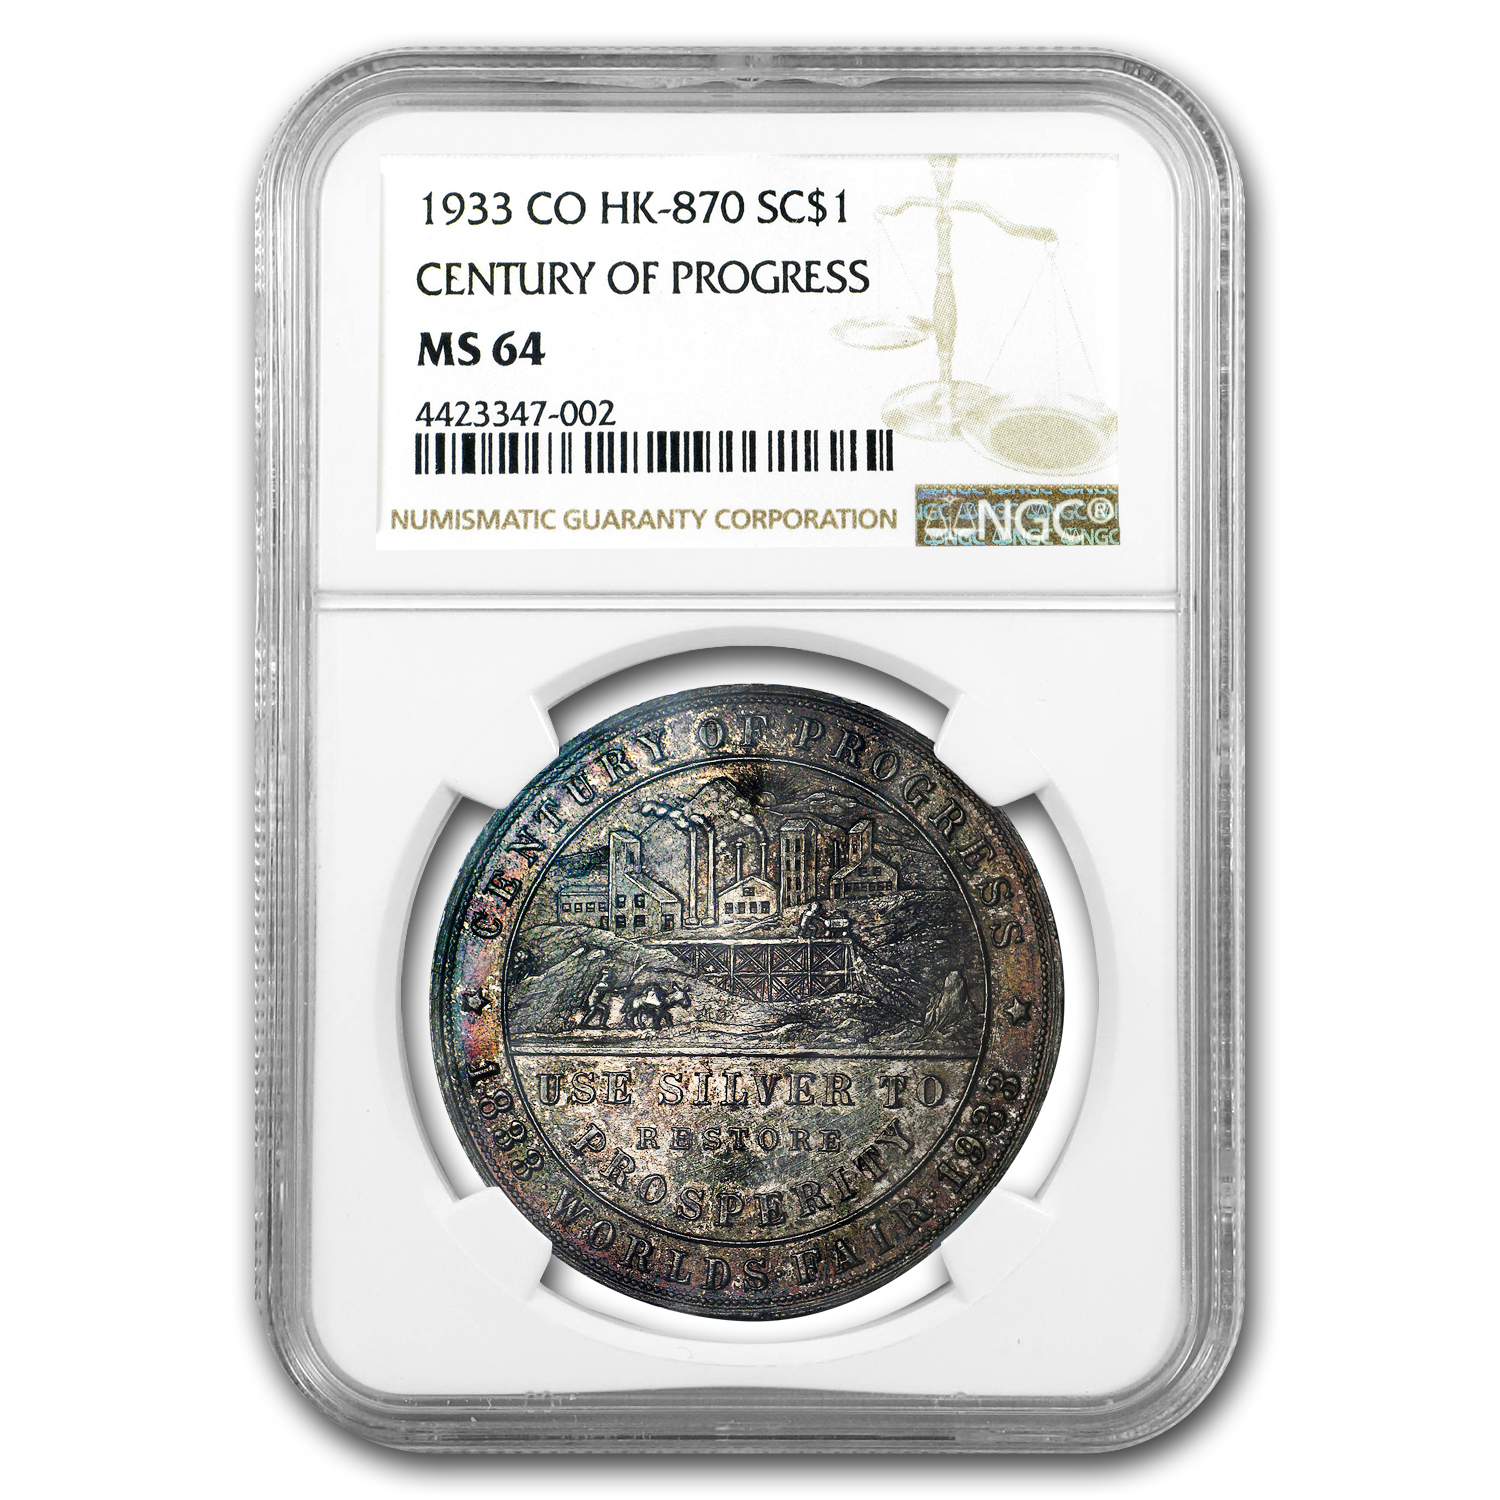 1933 Colorado Century of Progress Silver Dollar HK-870 MS-64 NGC